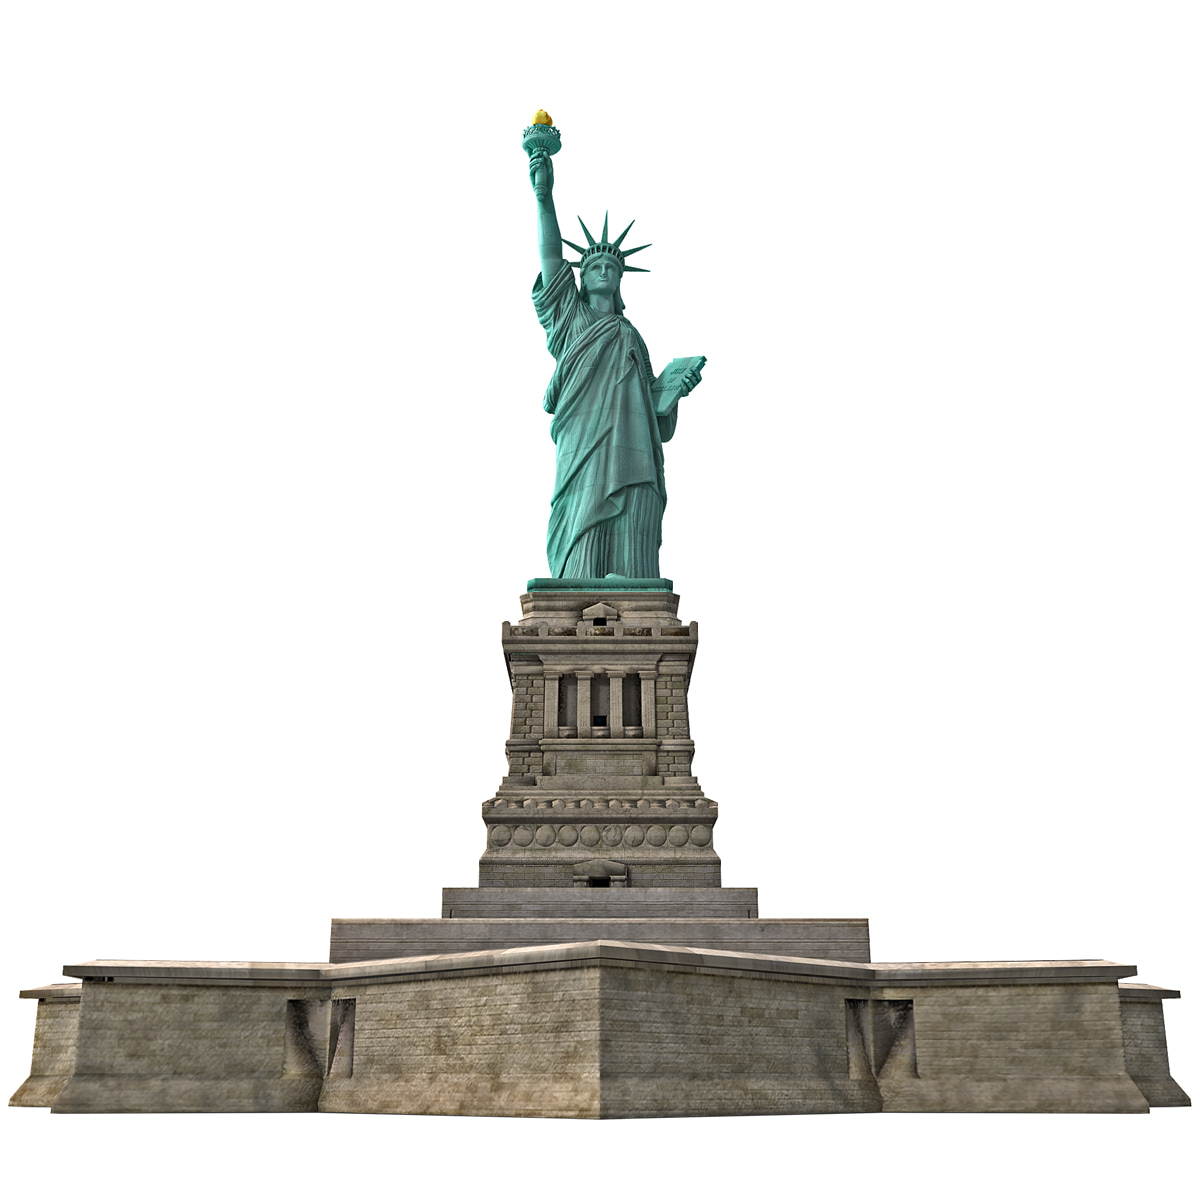 005_Statue_of_Liberty_Low_Poly.jpg